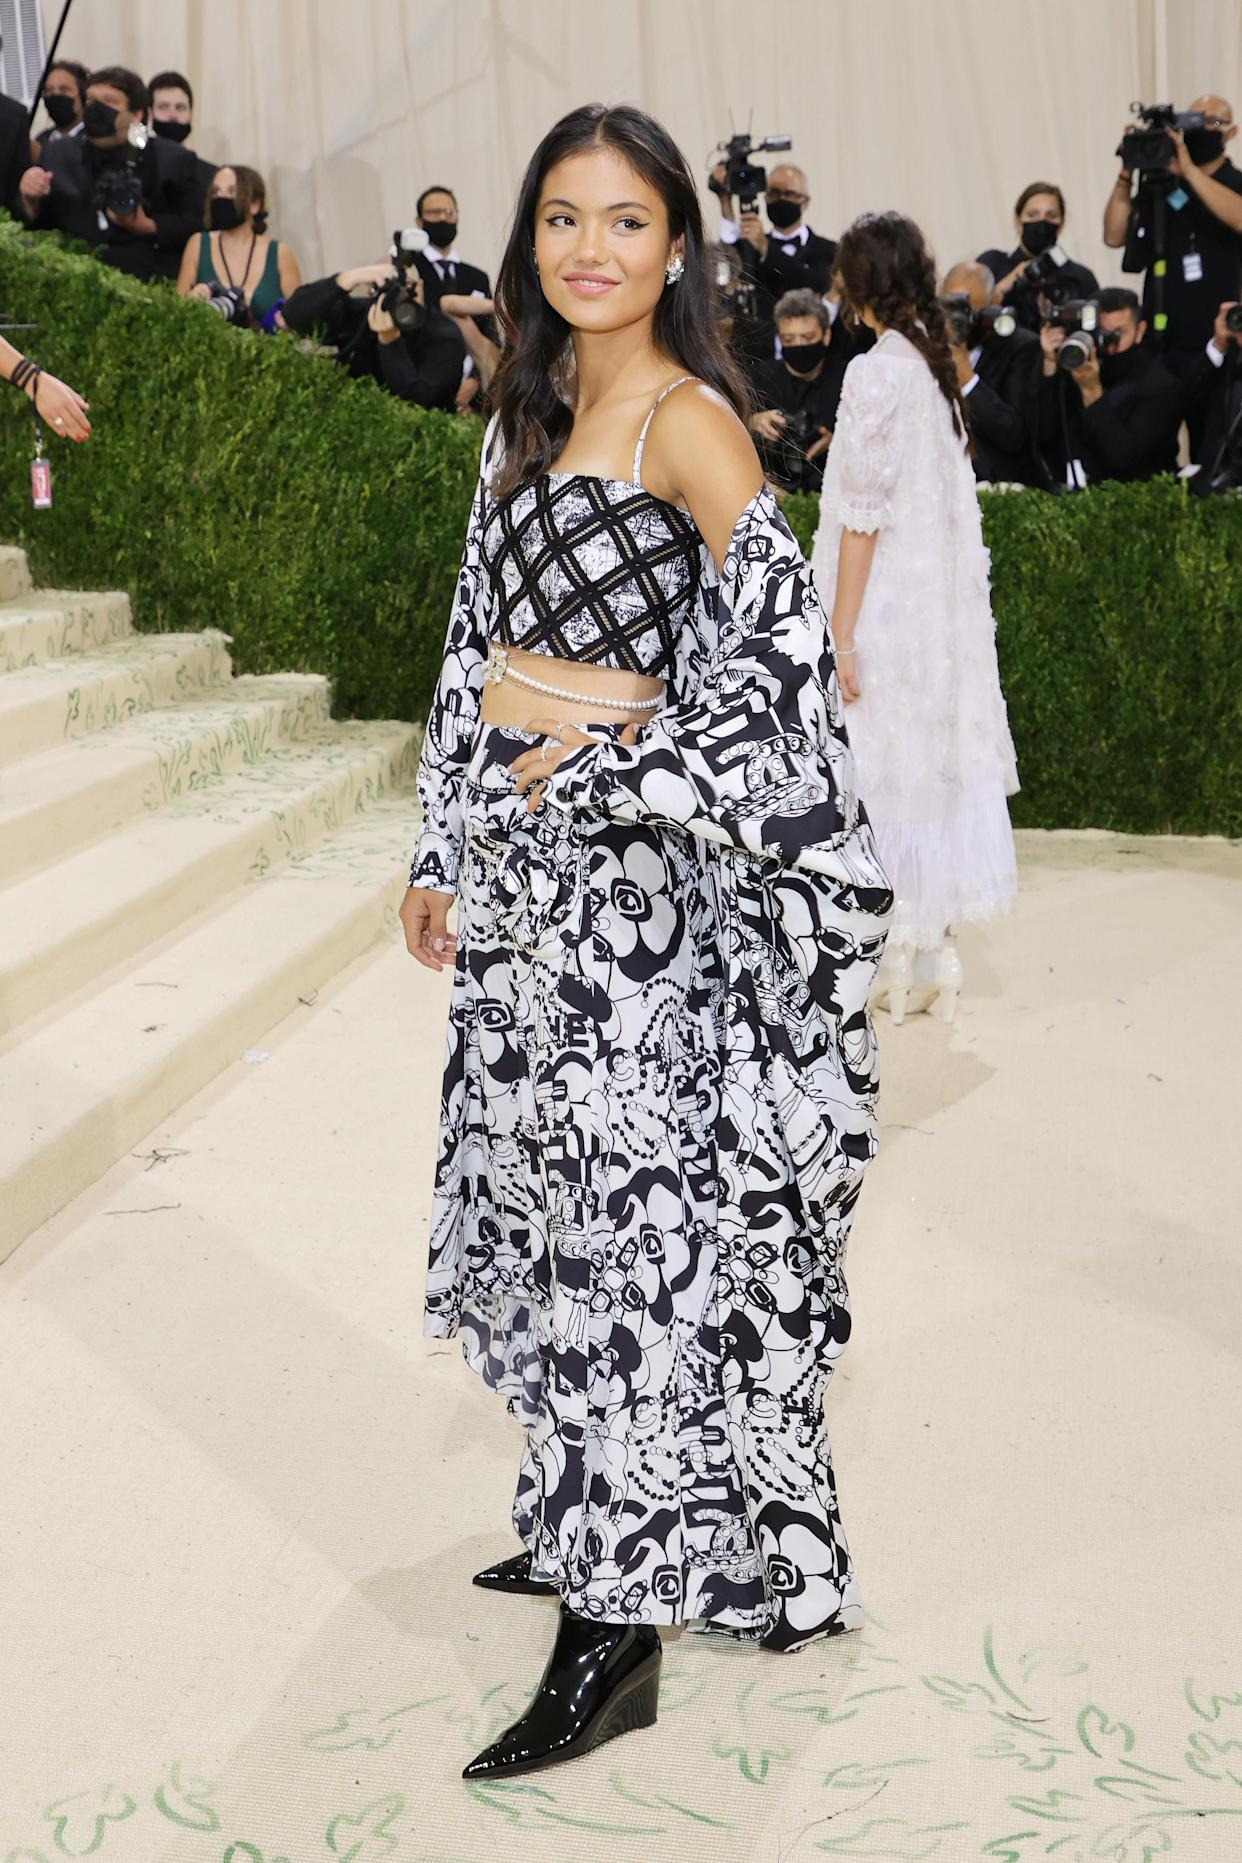 Emma Raducanu attends The 2021 Met Gala Celebrating In America: A Lexicon Of Fashion at Metropolitan Museum of Art on September 13, 2021 in New York City. (Getty Images)